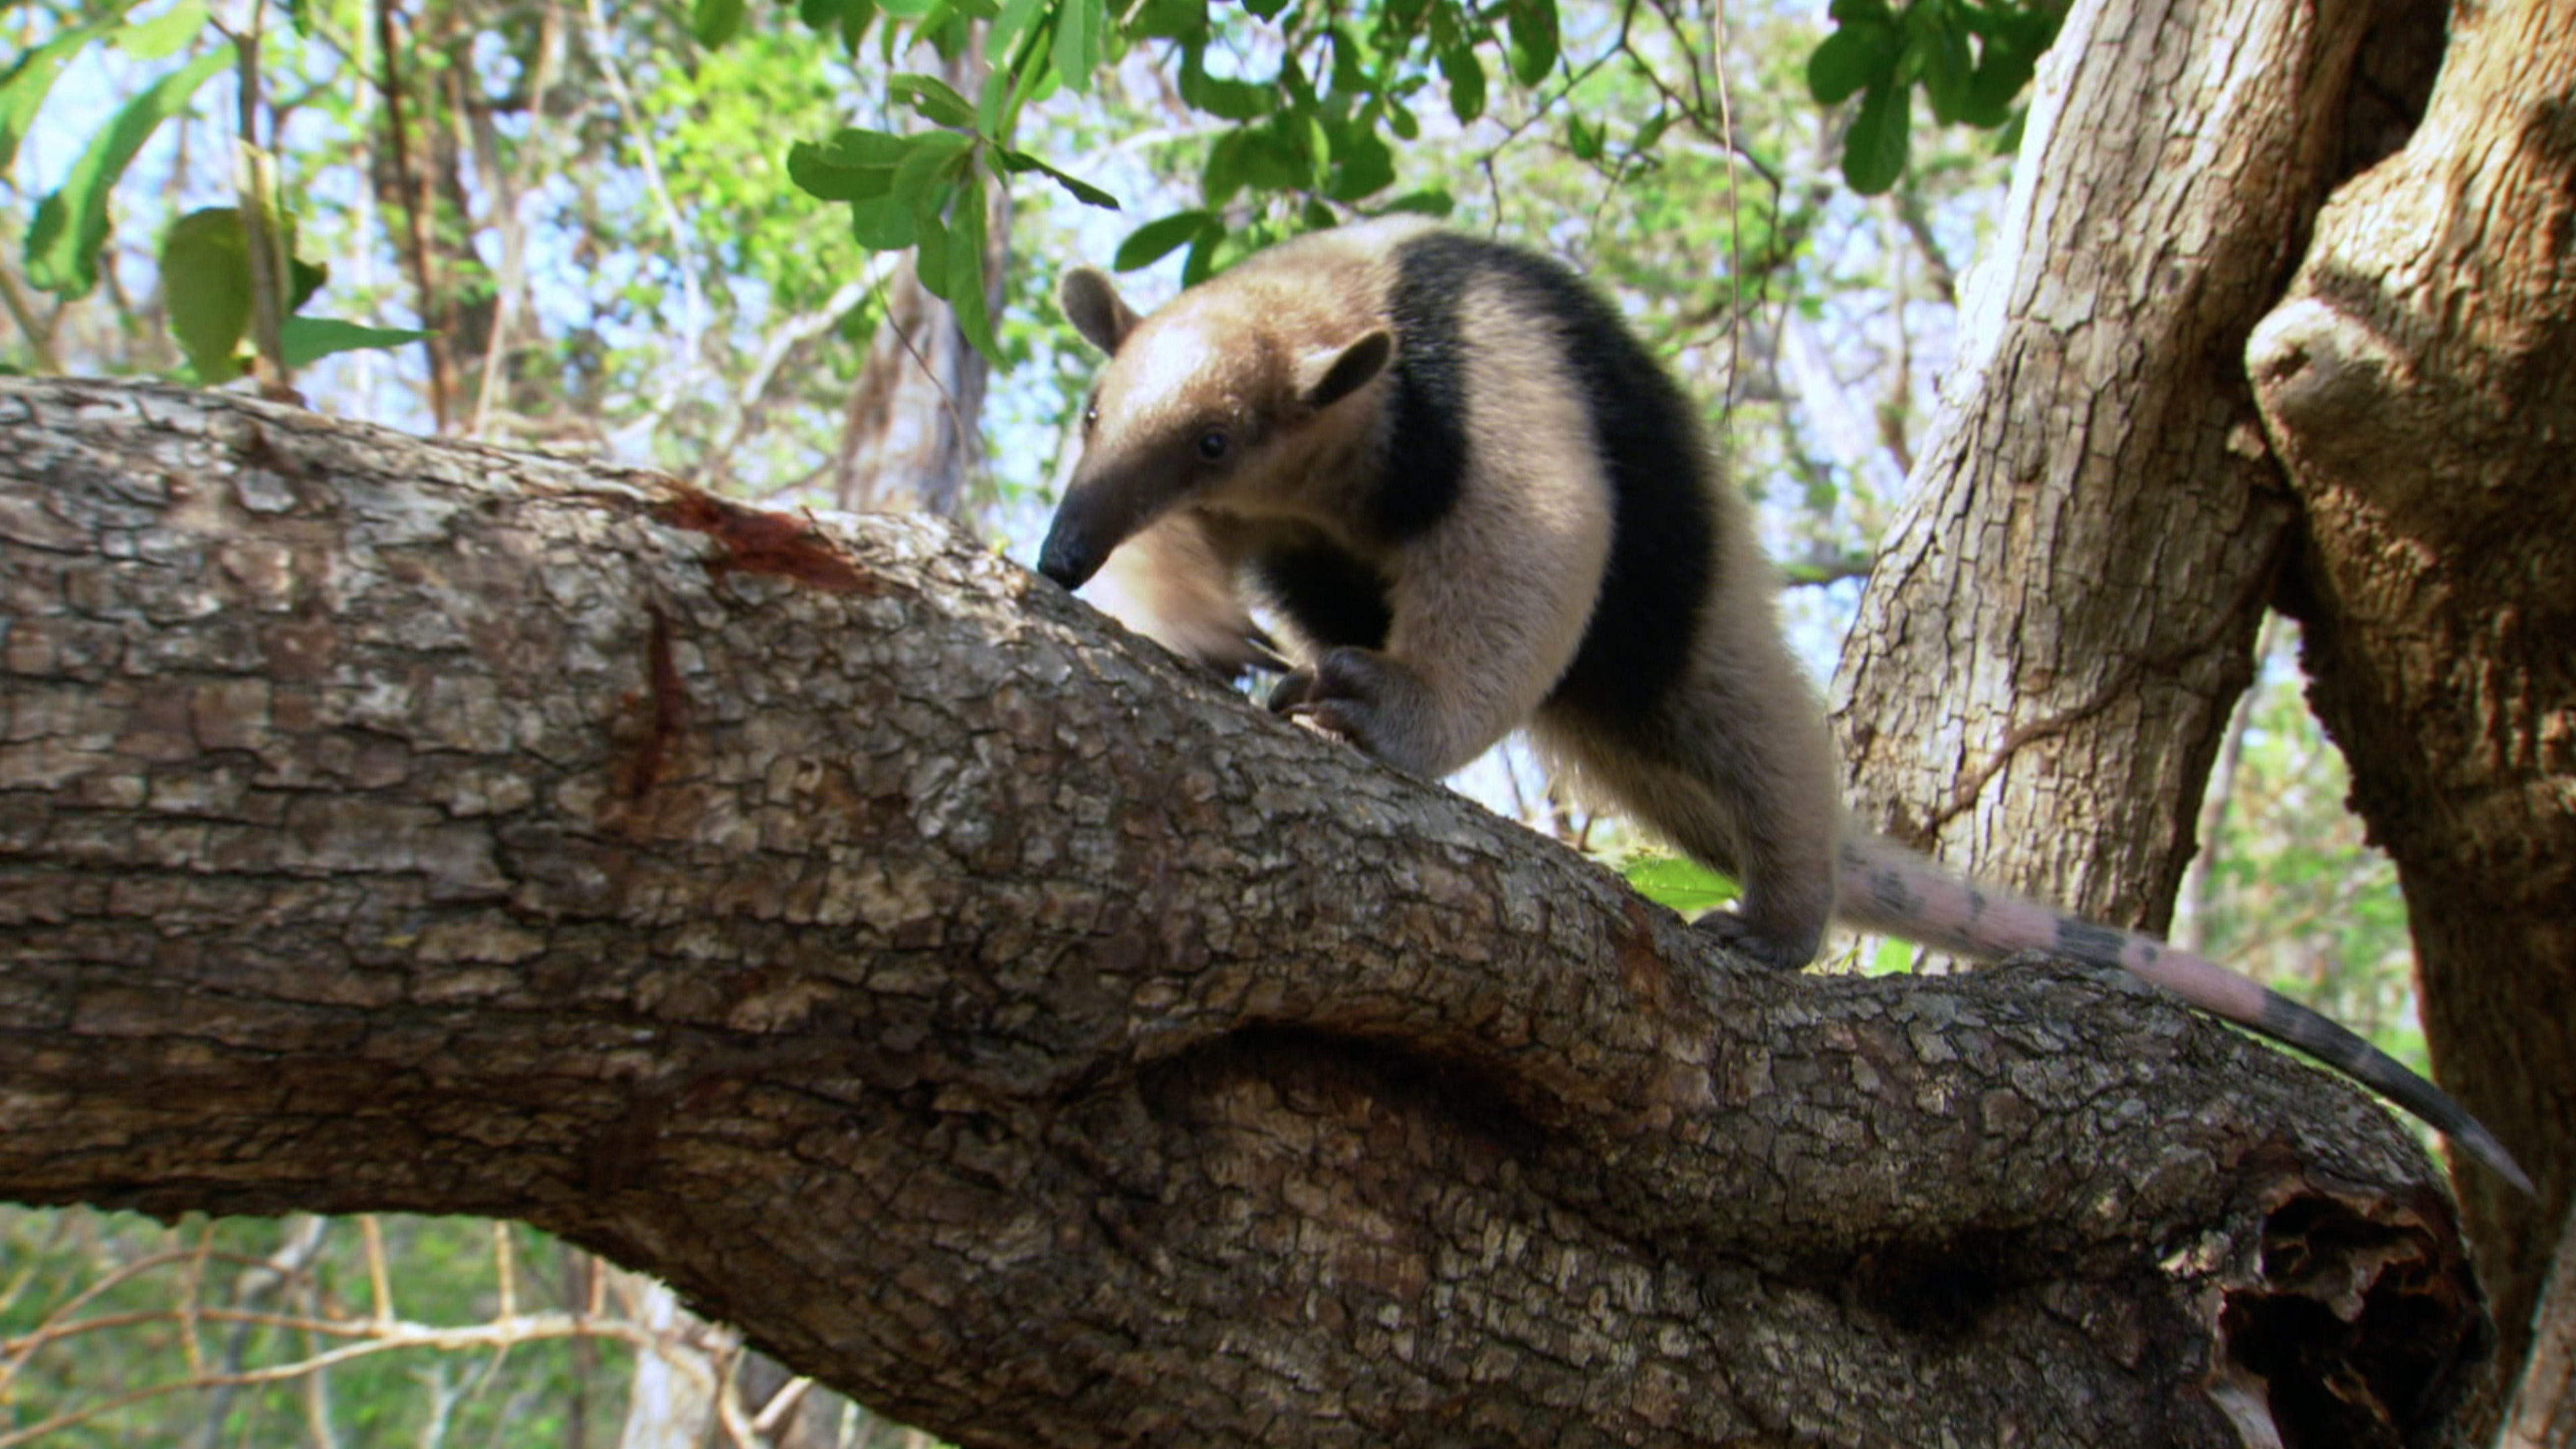 Northern Tamandua (Tamandua mexicana)